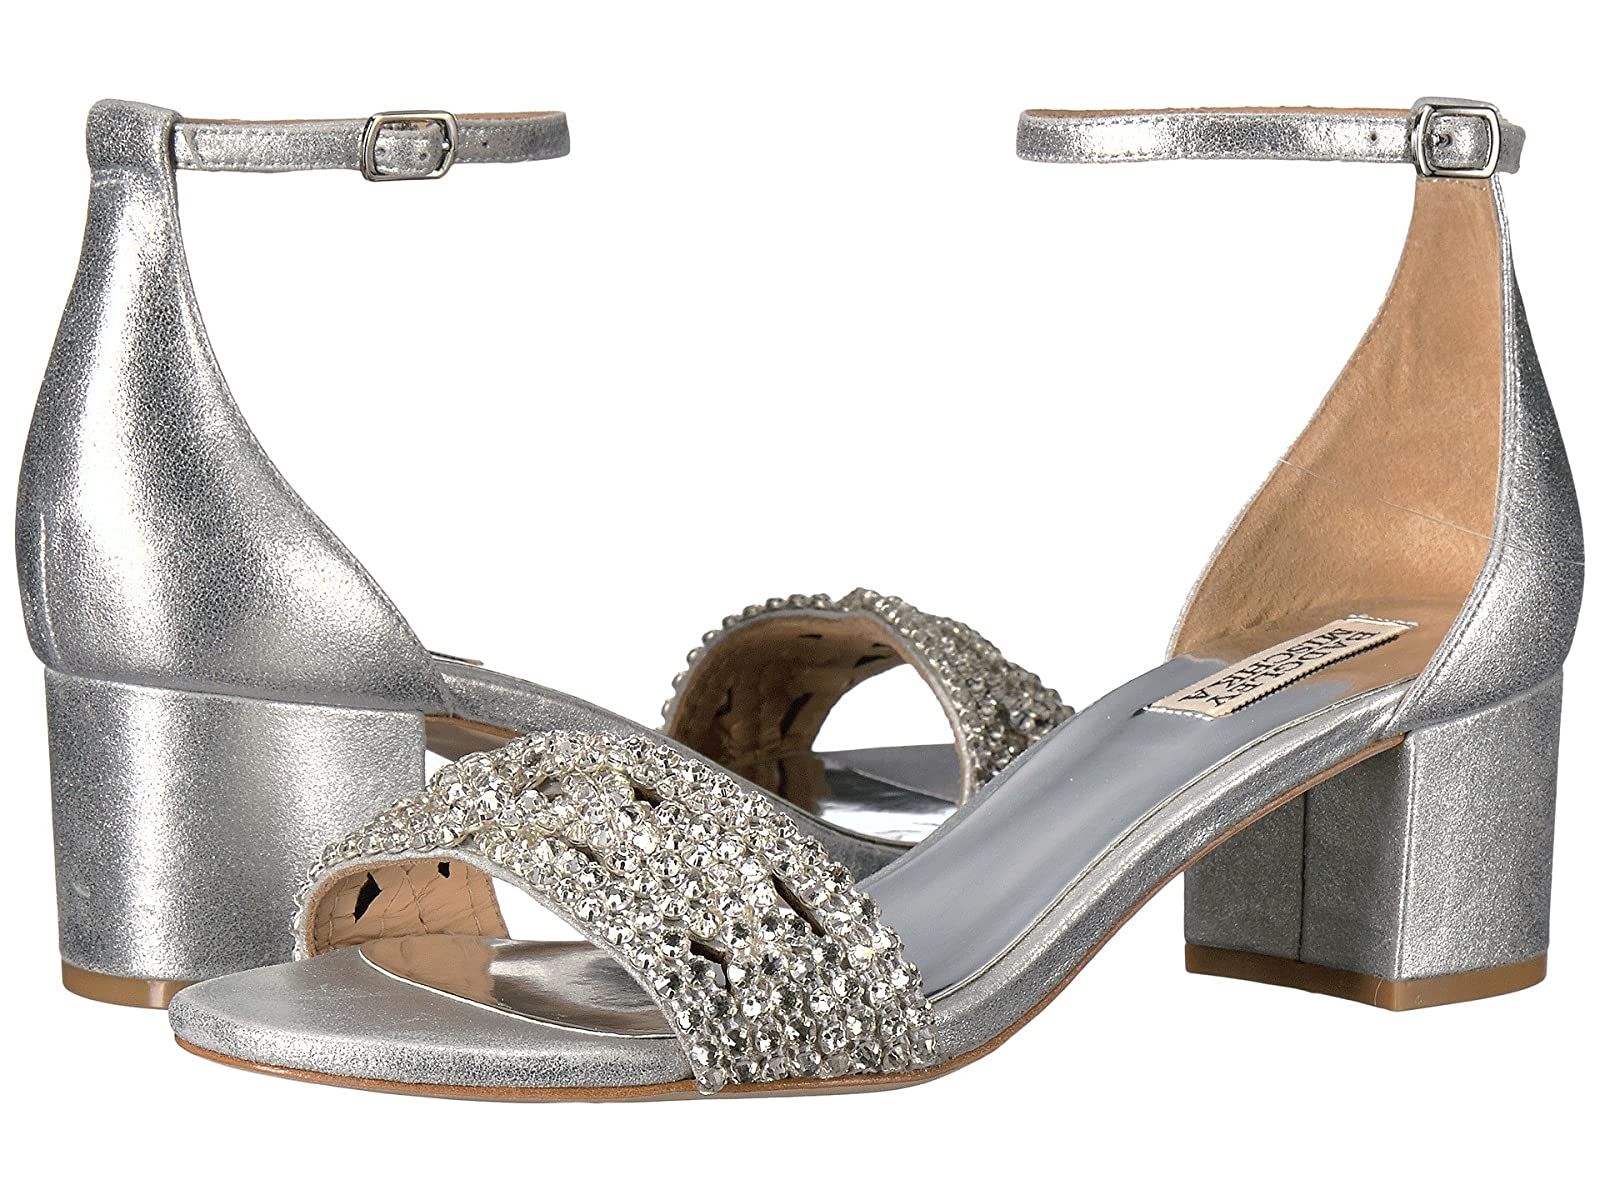 Badgley Mischka TrianaCheap and distinctive eye-catching shoes